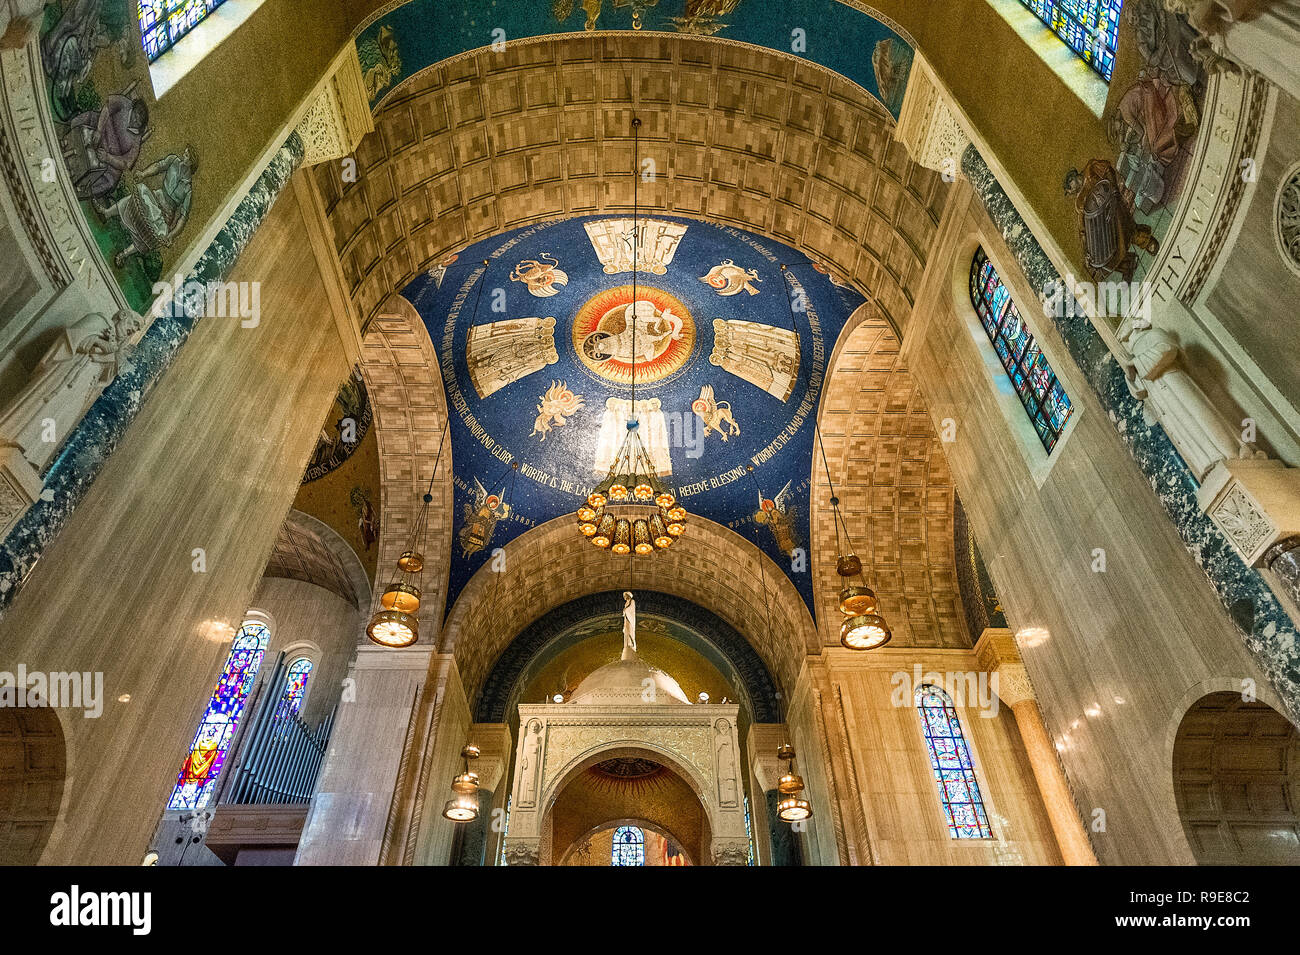 Interior of the Basilica of the National Shrine of the Immaculate Conception, Washington DC, USA. Stock Photo